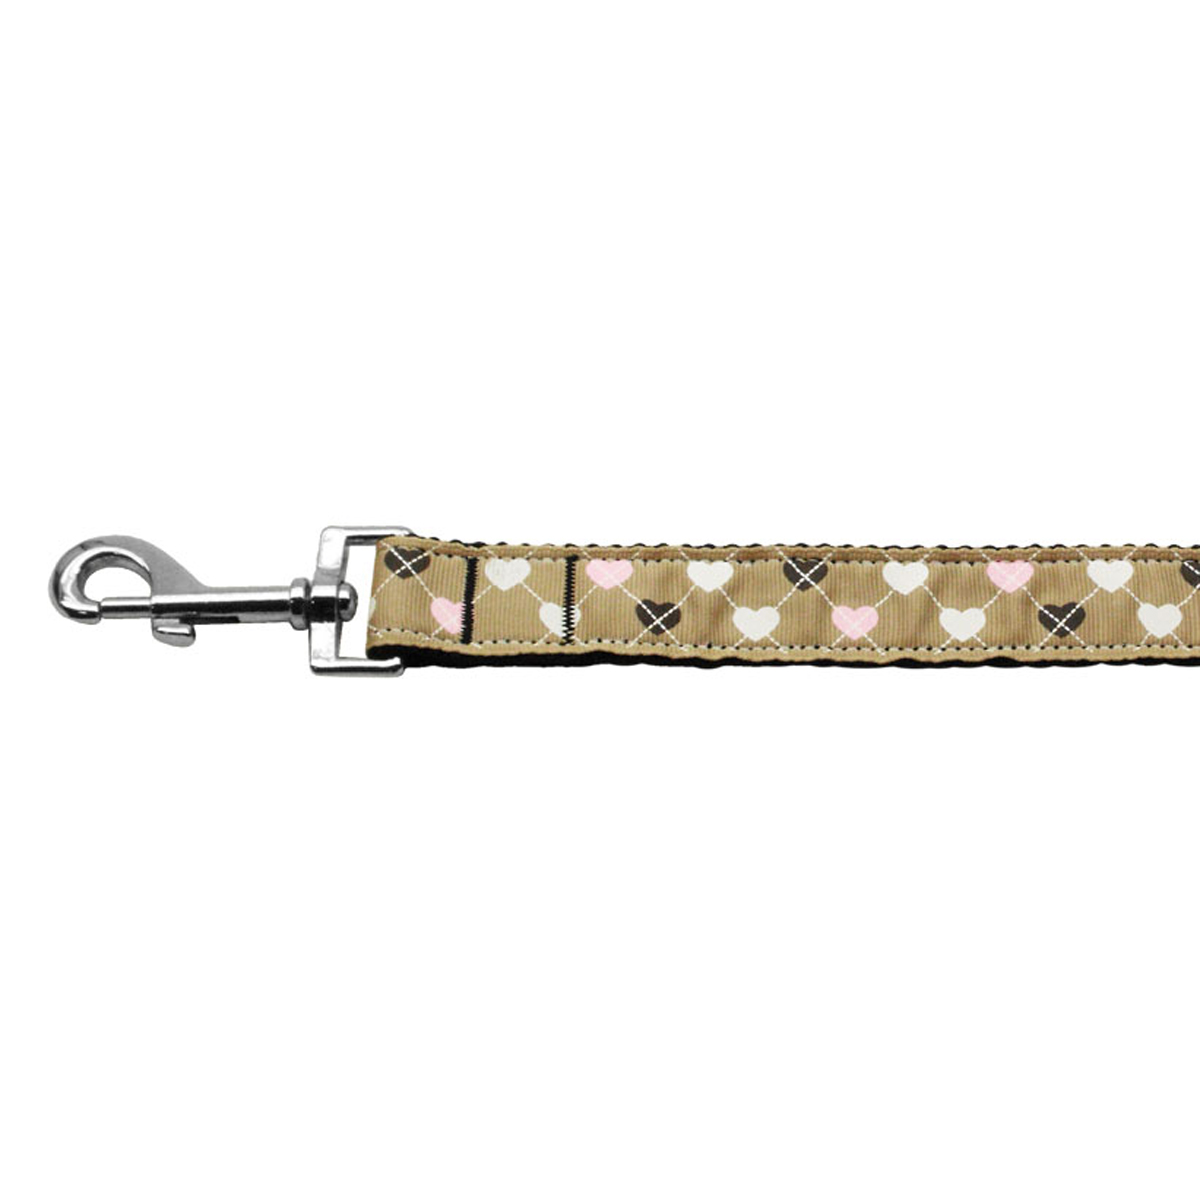 Argyle Hearts Dog Leash - Tan